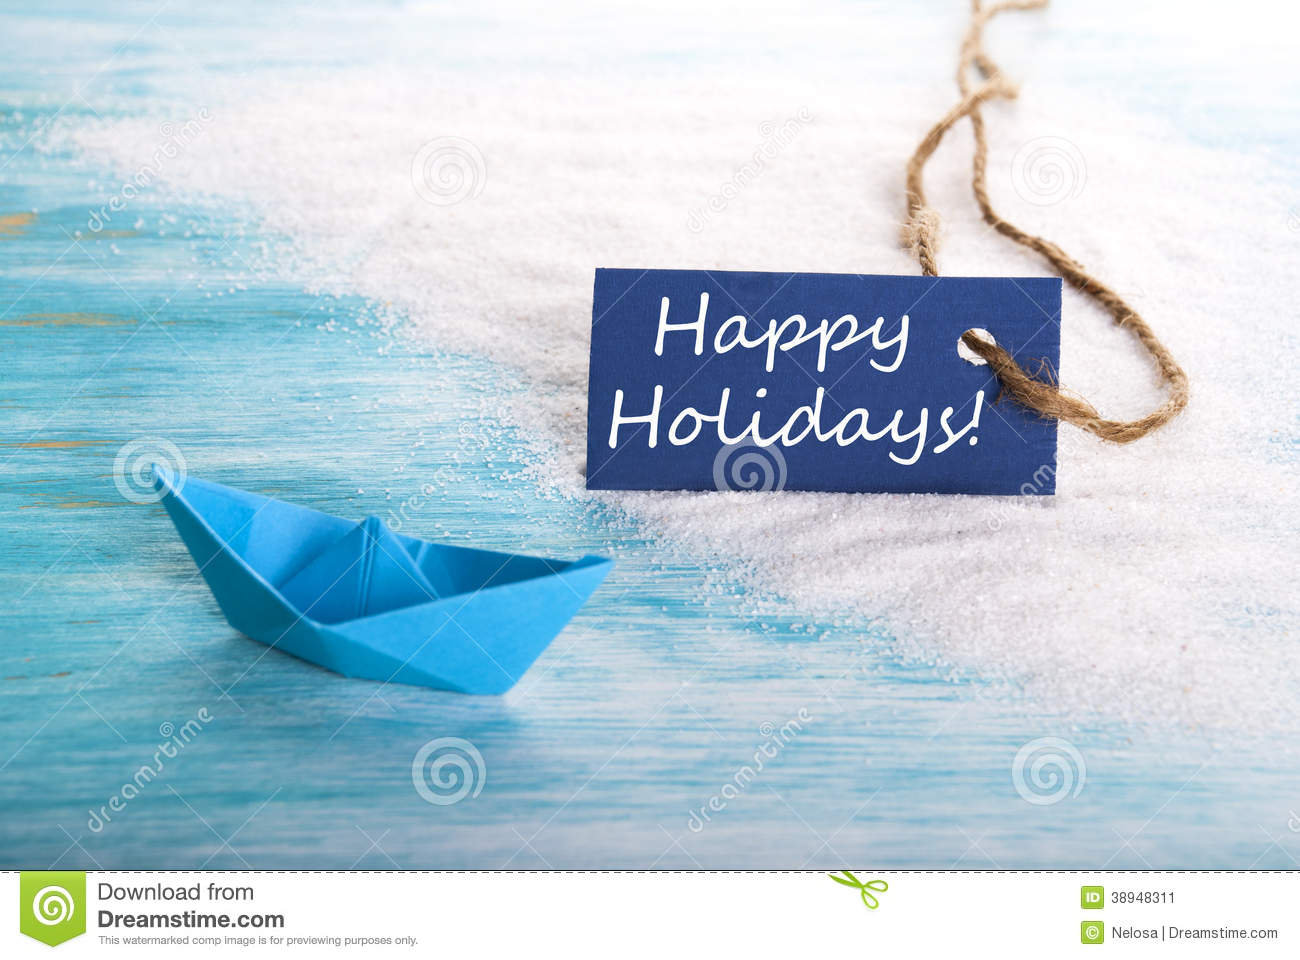 Label with Happy Holidays and Boat